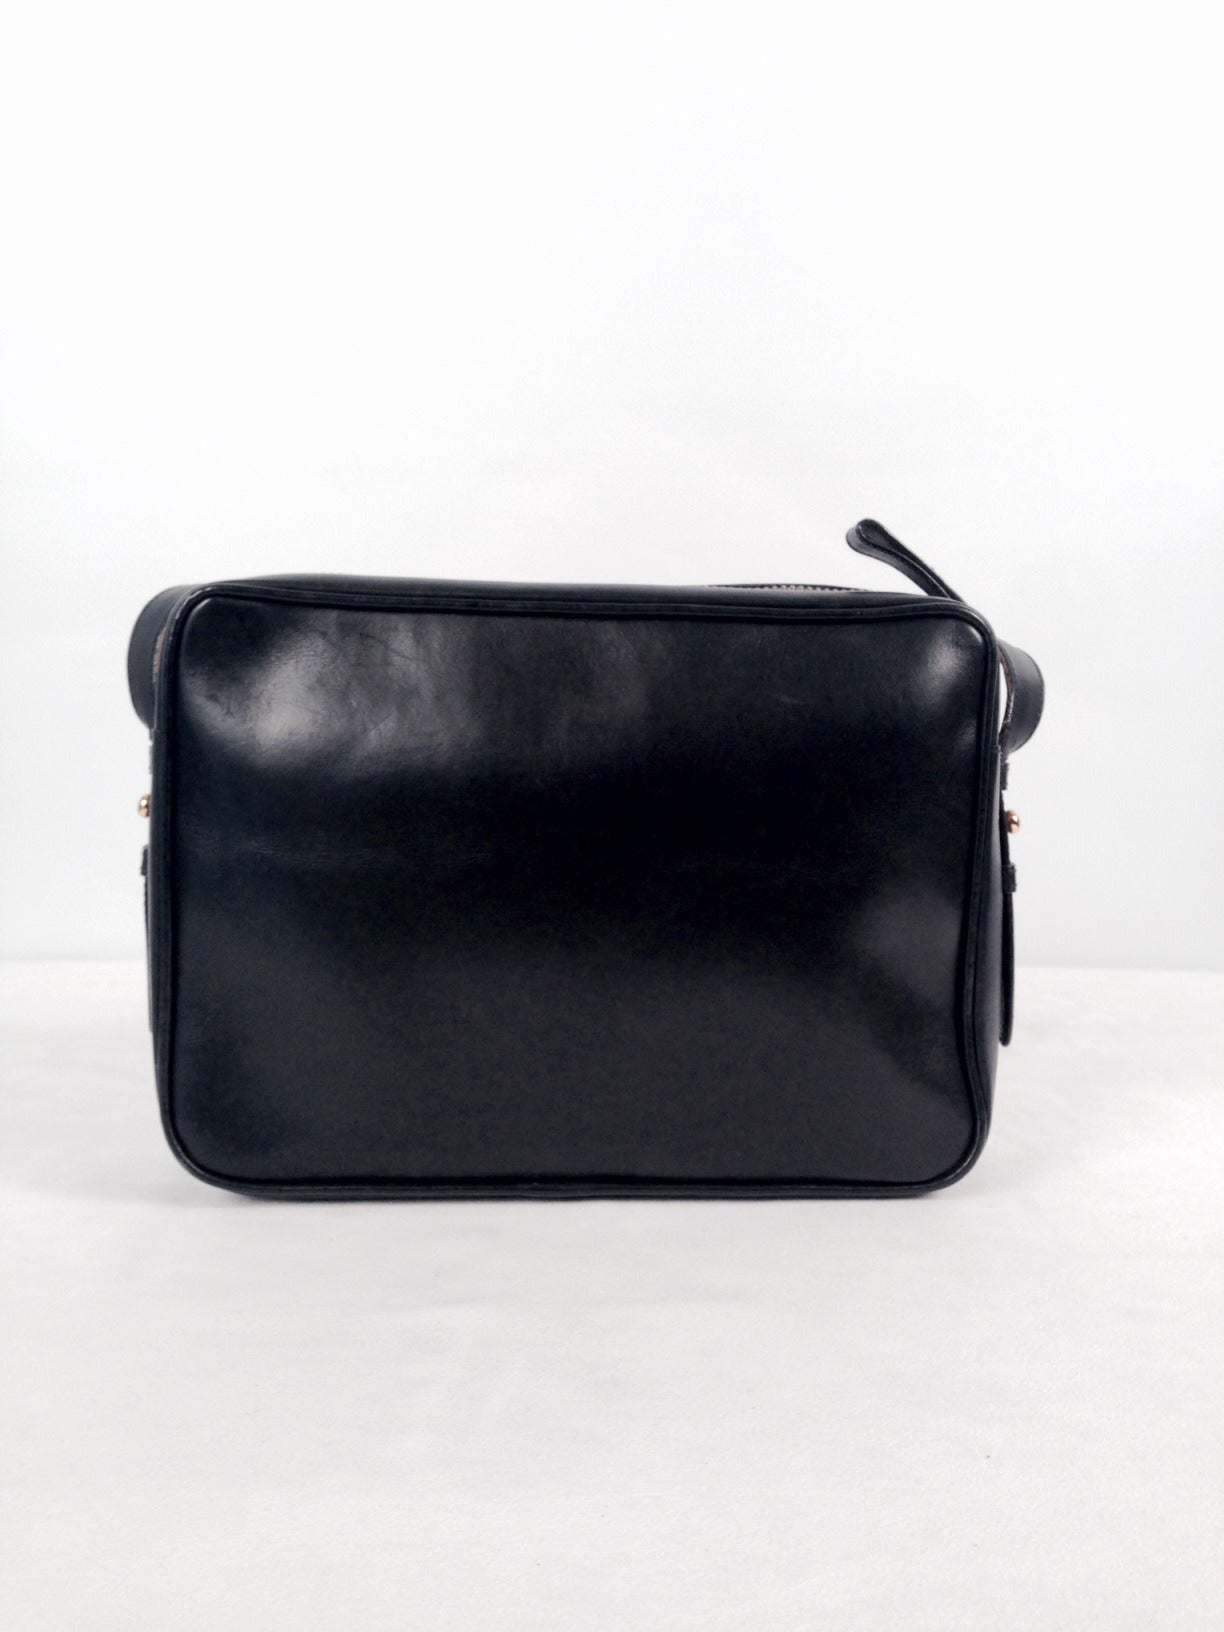 d13856887205 Vintage Gucci Black Leather Camera Bag In Excellent Condition For Sale In  Palm Beach, FL